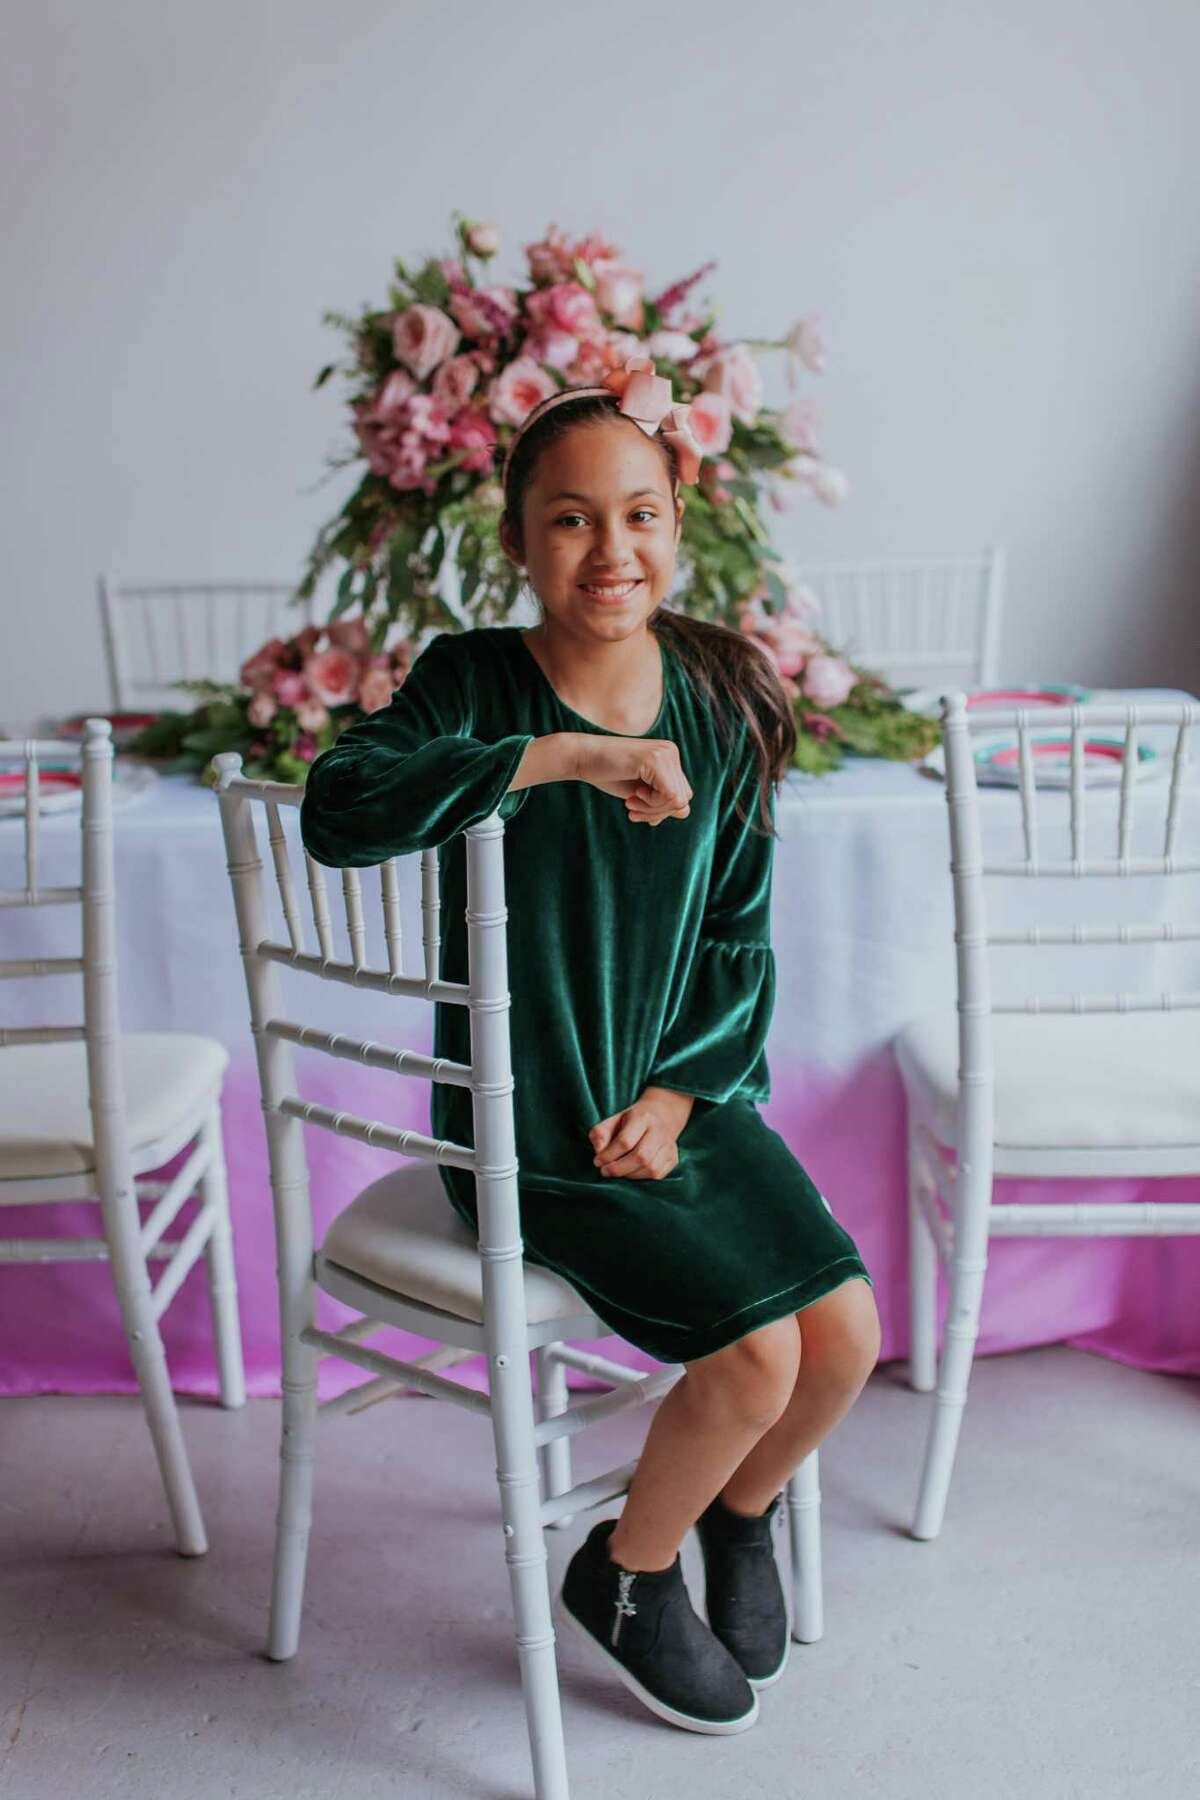 """Aaliyah Leon, 10, wears the """"Joy"""" dress by Houston designer Esther Freedman. Her company is Cuteheads. The flowers are from H-E-B."""